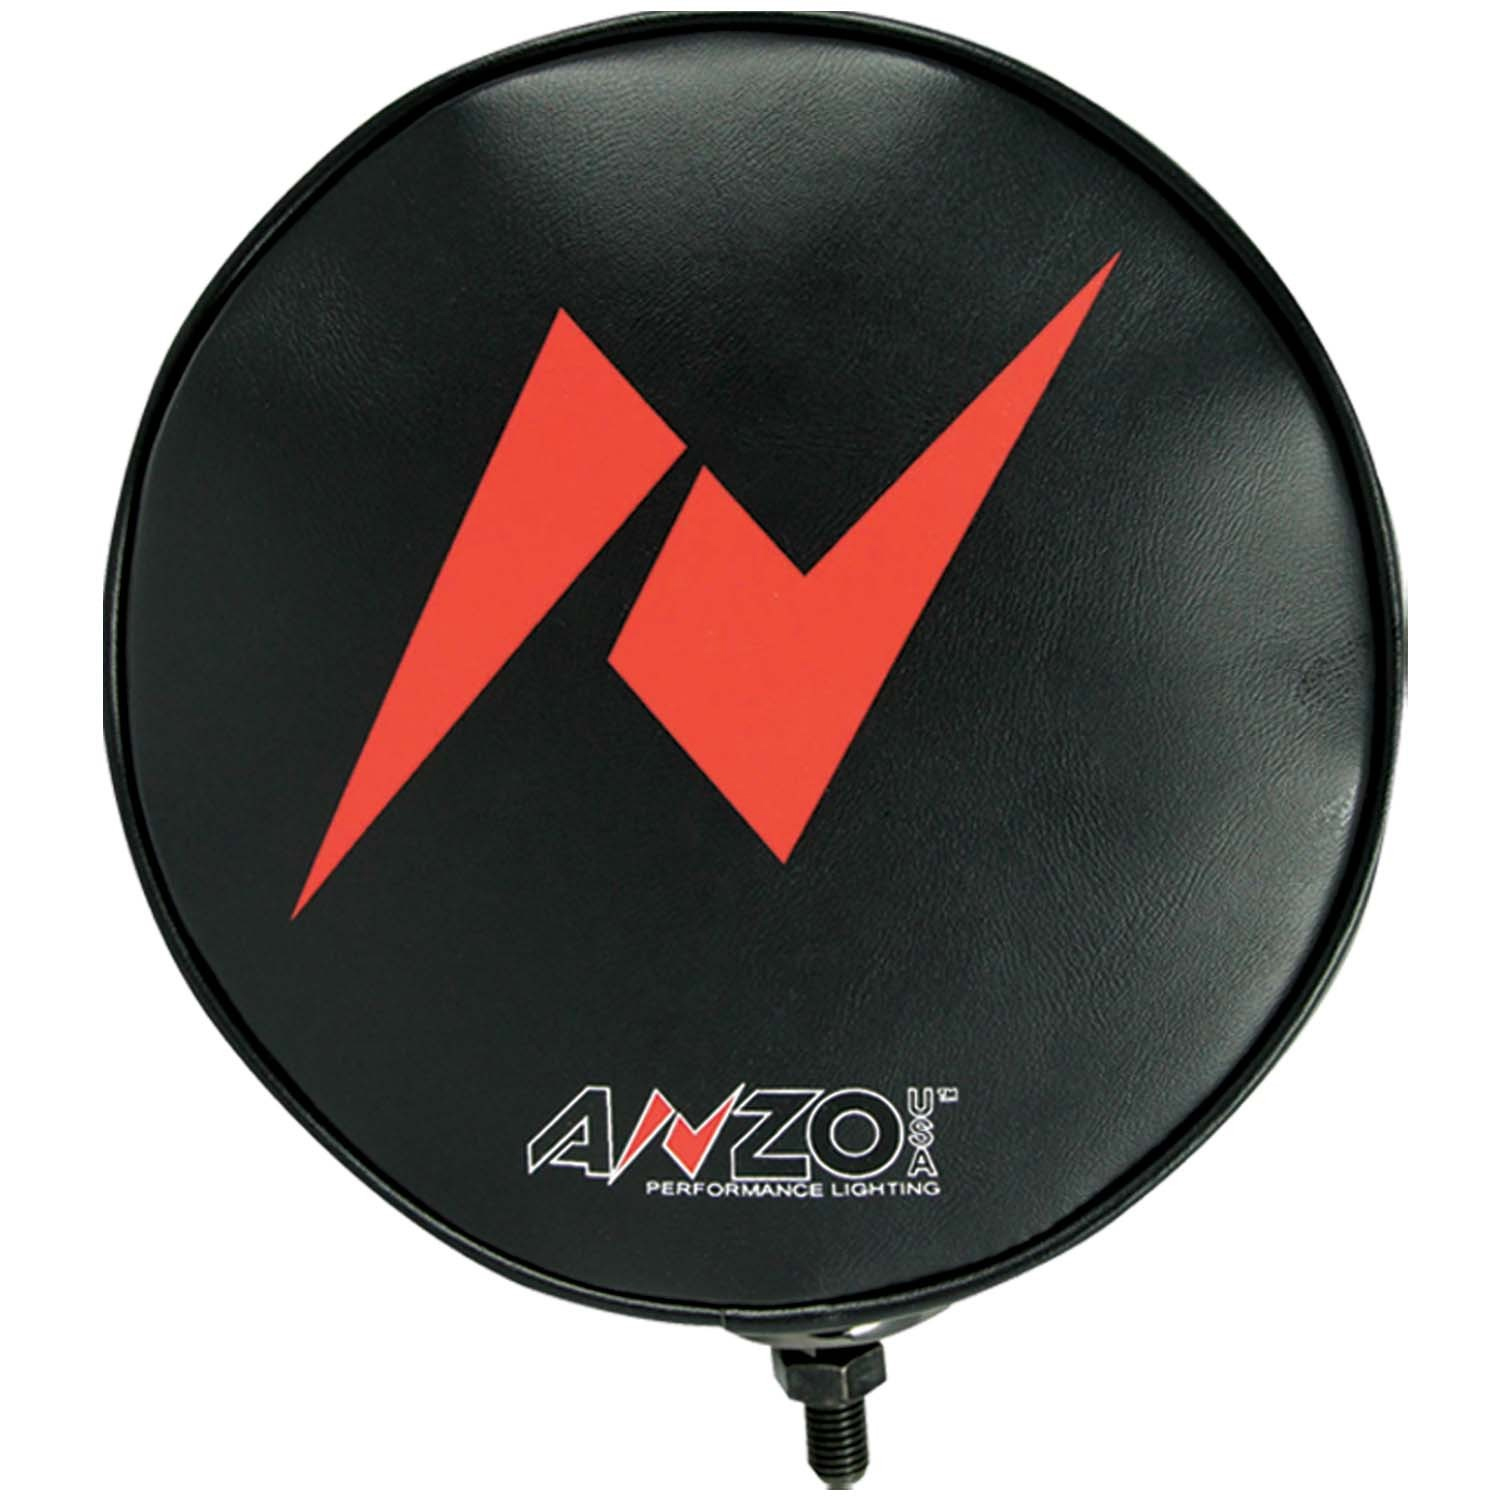 851022 Anzo Driving/ Fog Light Cover 8 Inch Round